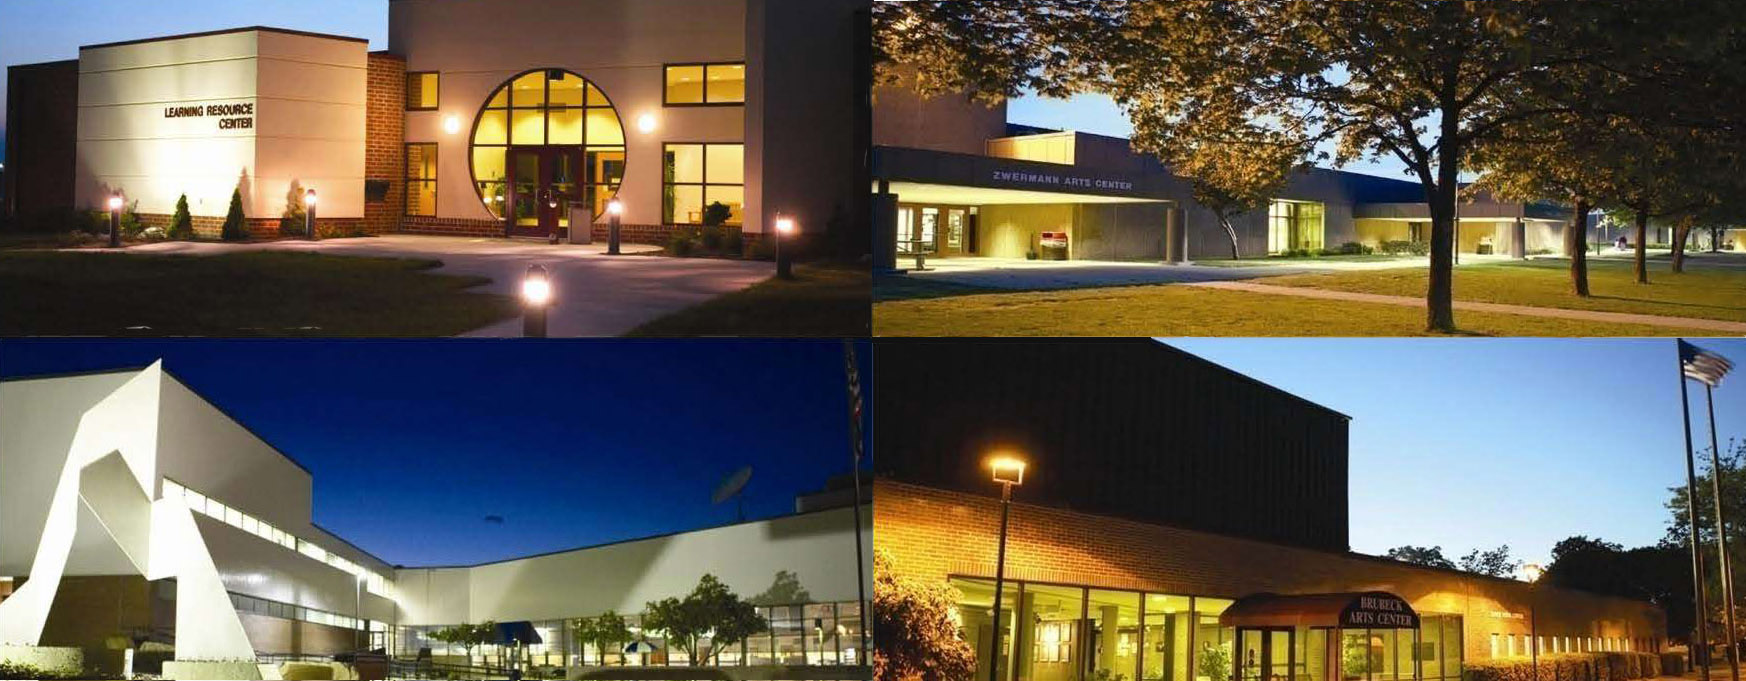 IECC College Campuses Photo Collage